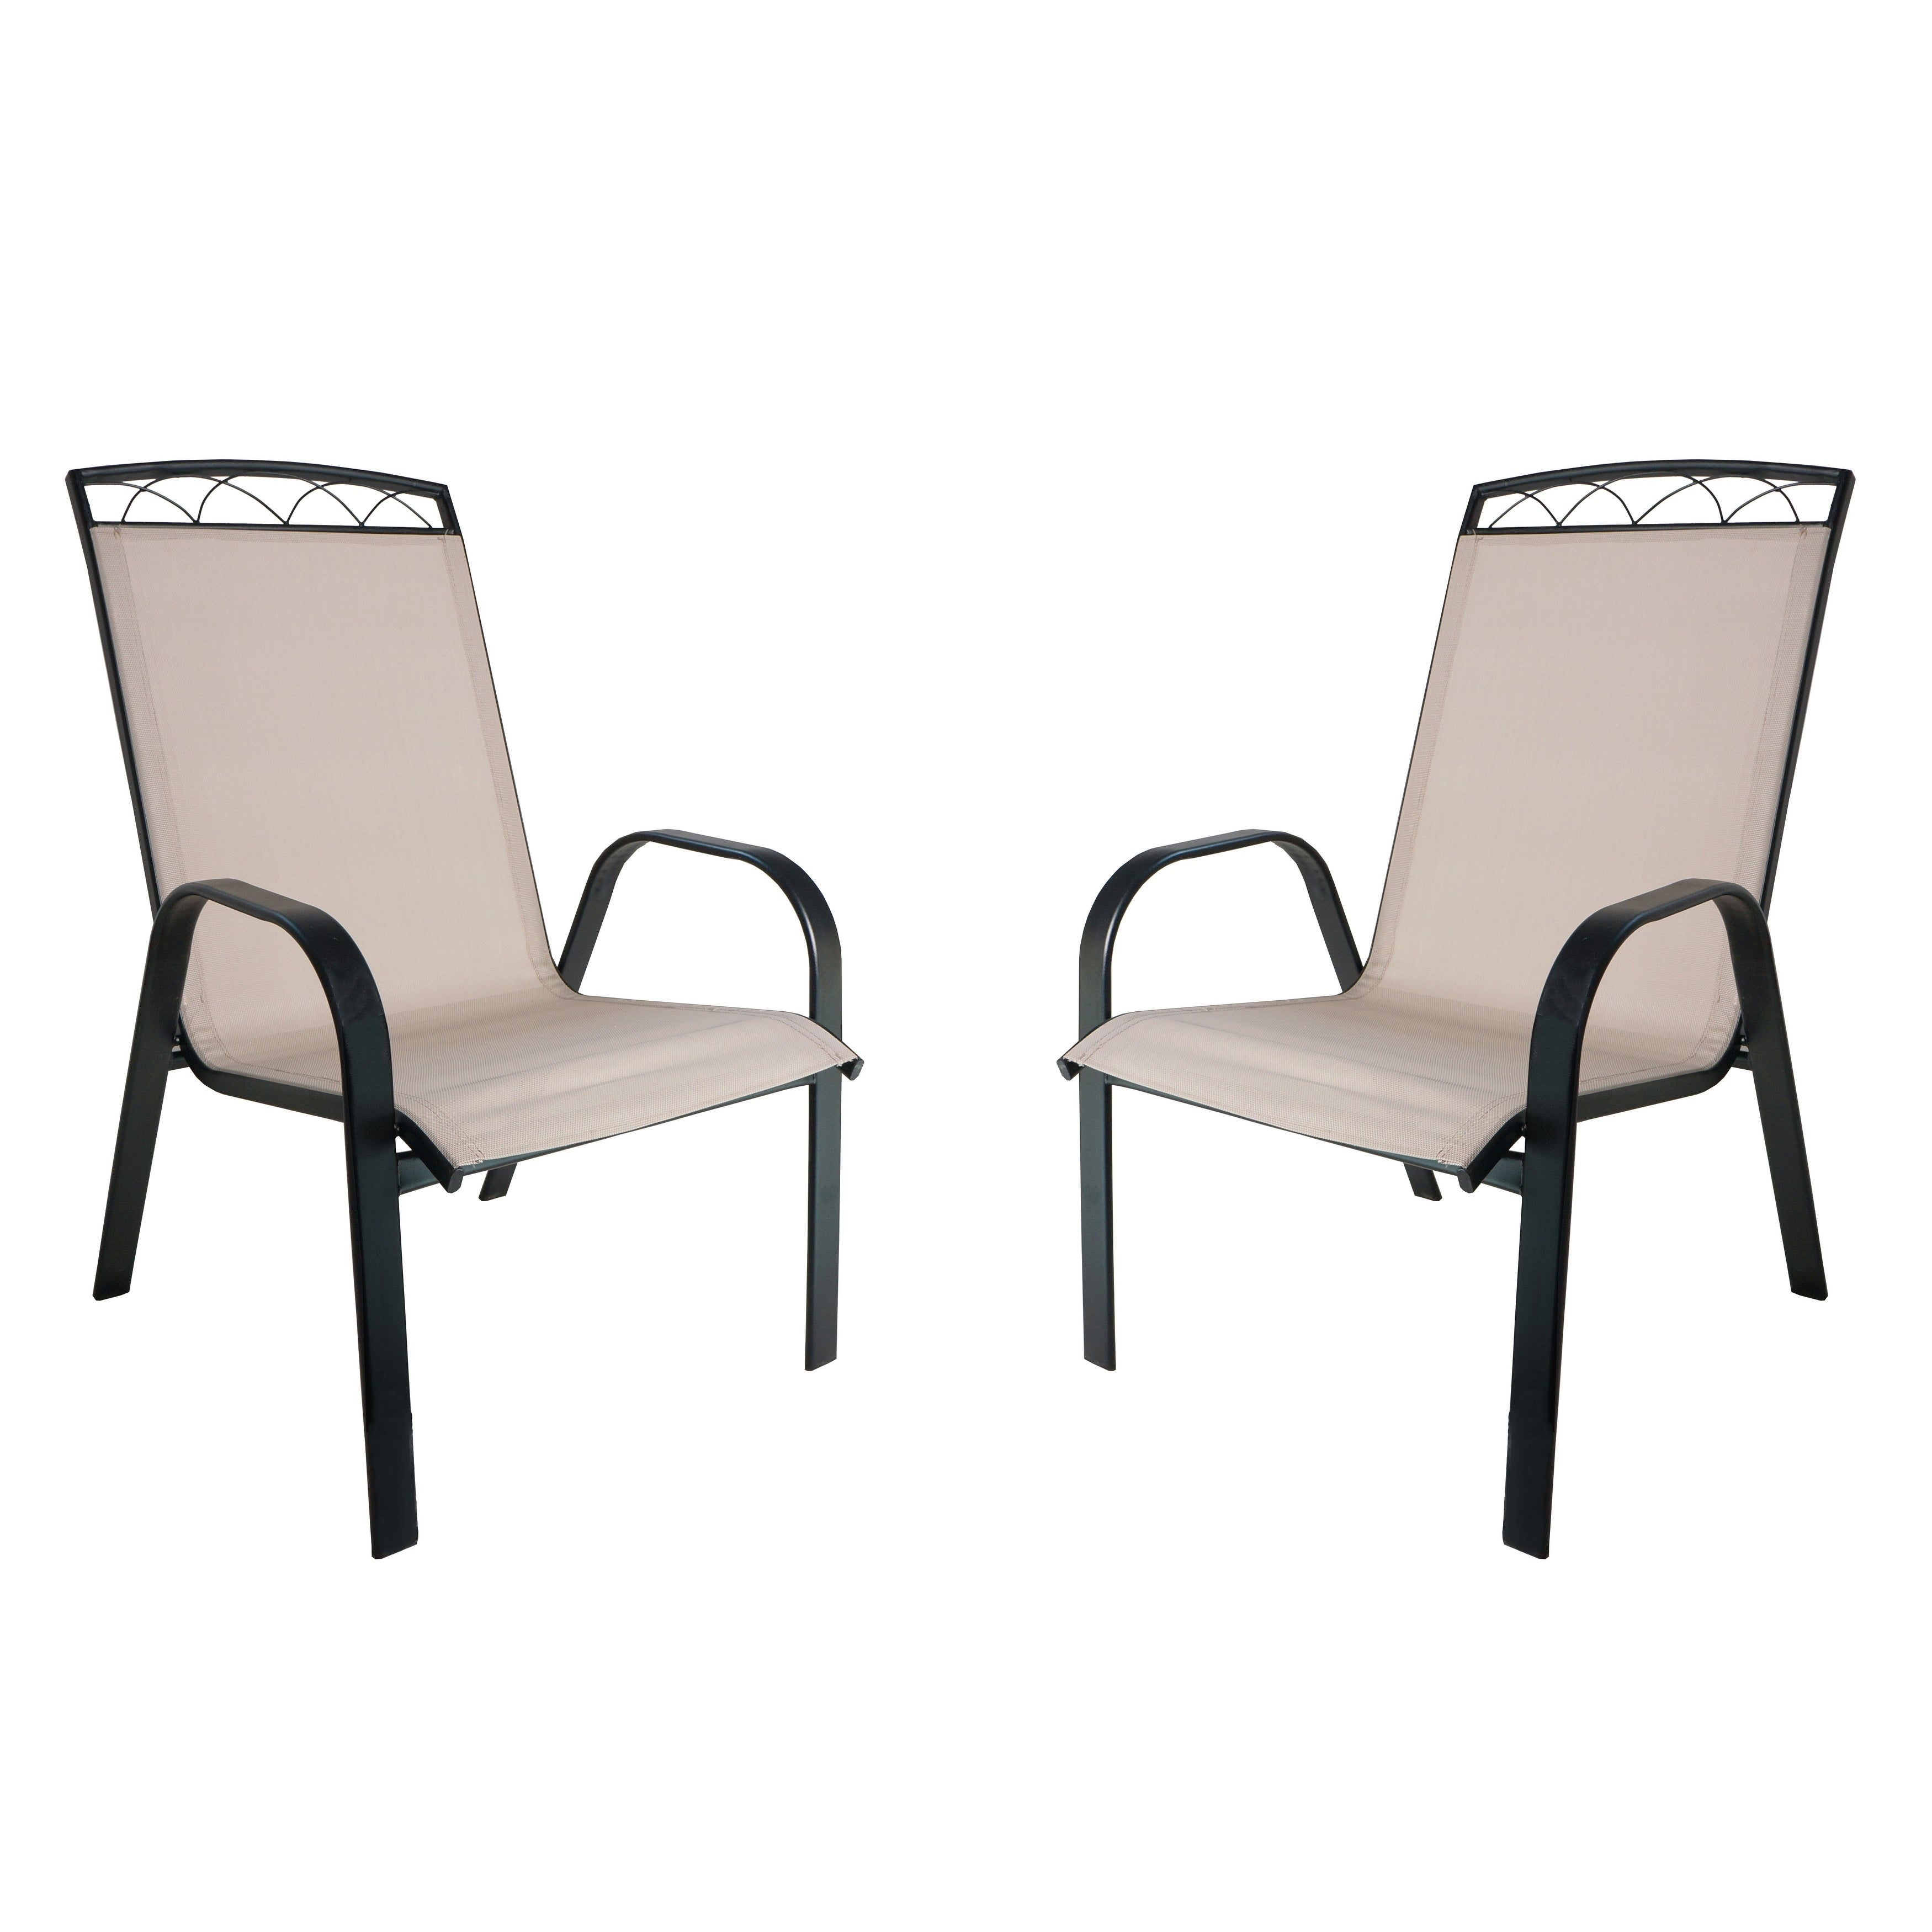 Monticello 2-PC Sling Dining Chairs-Black (Black/beige)